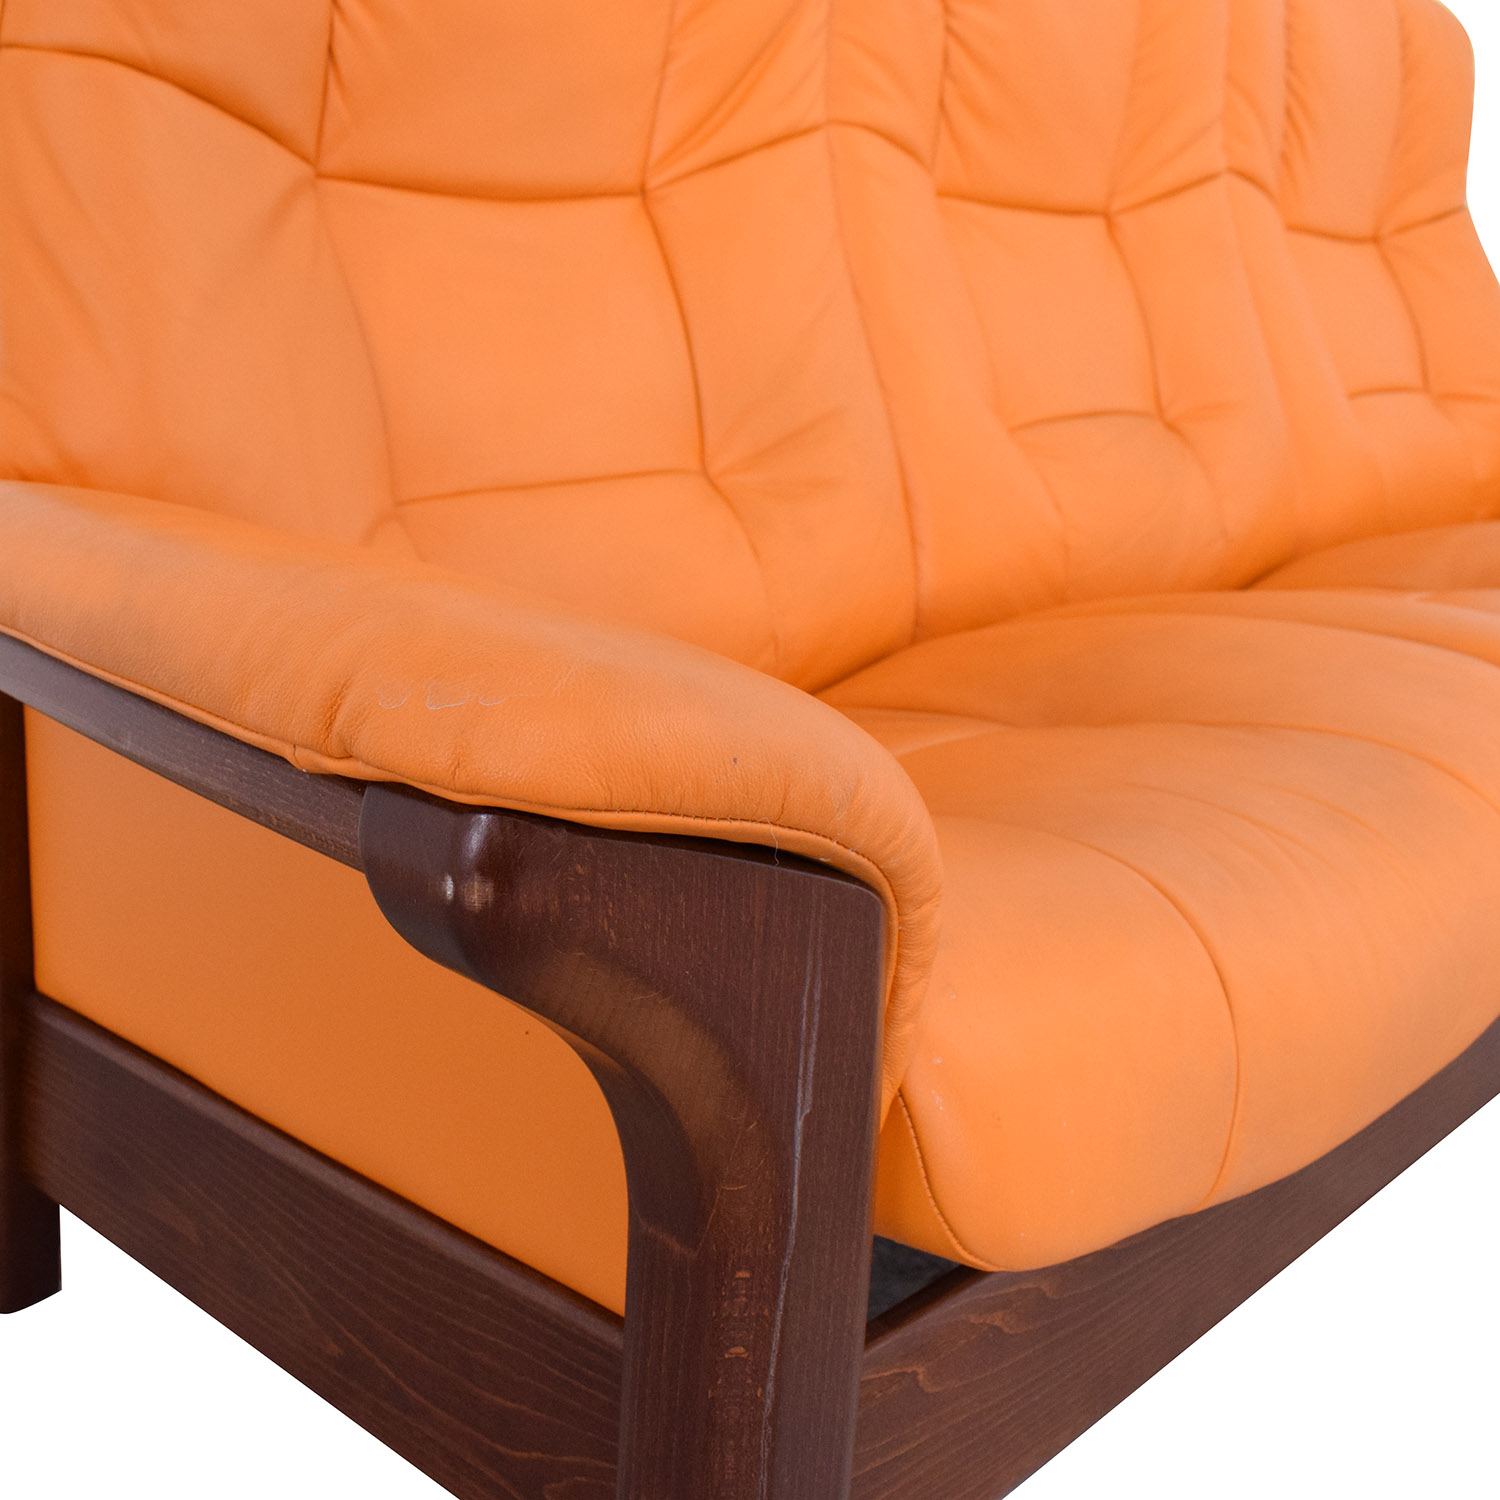 Ekornes Ekornes Buckingham High Back Sofa nj